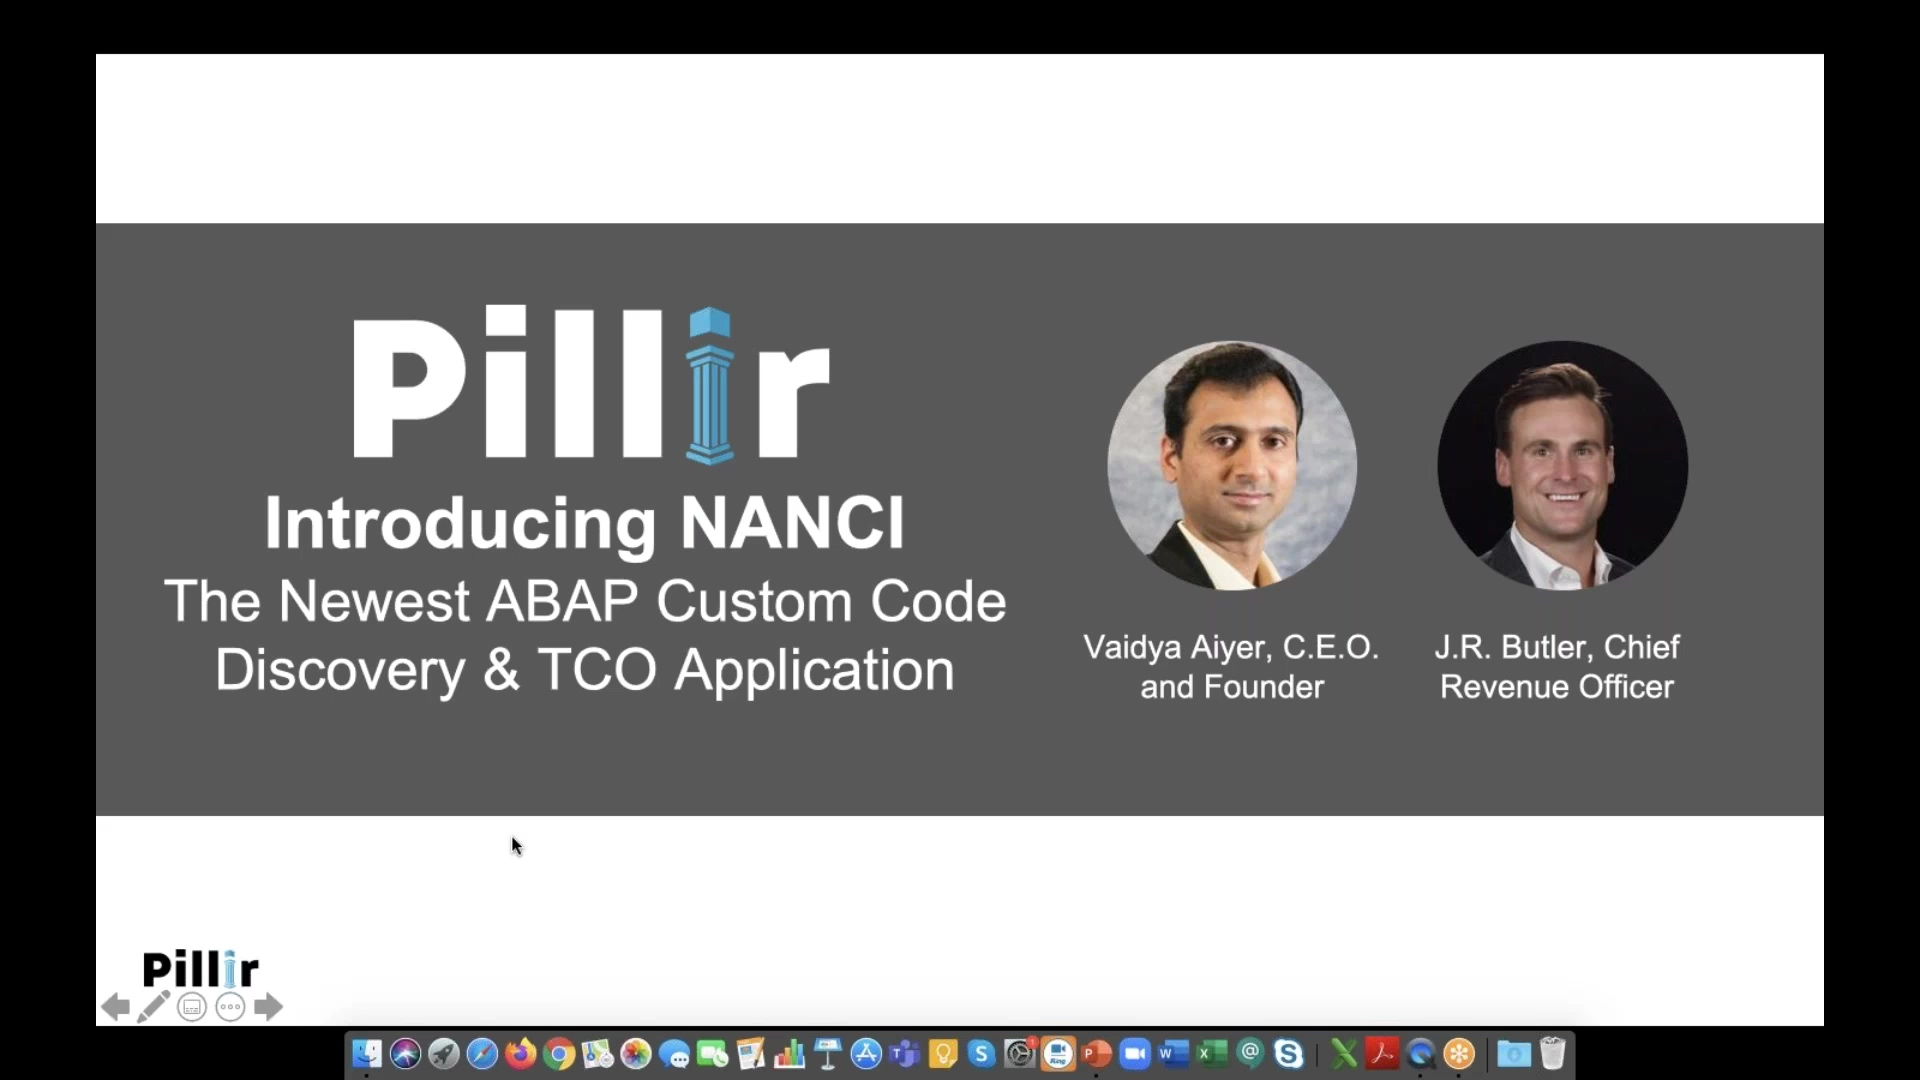 Introducing NANCI - The Newest ABAP Custom Code Discovery & TCO App